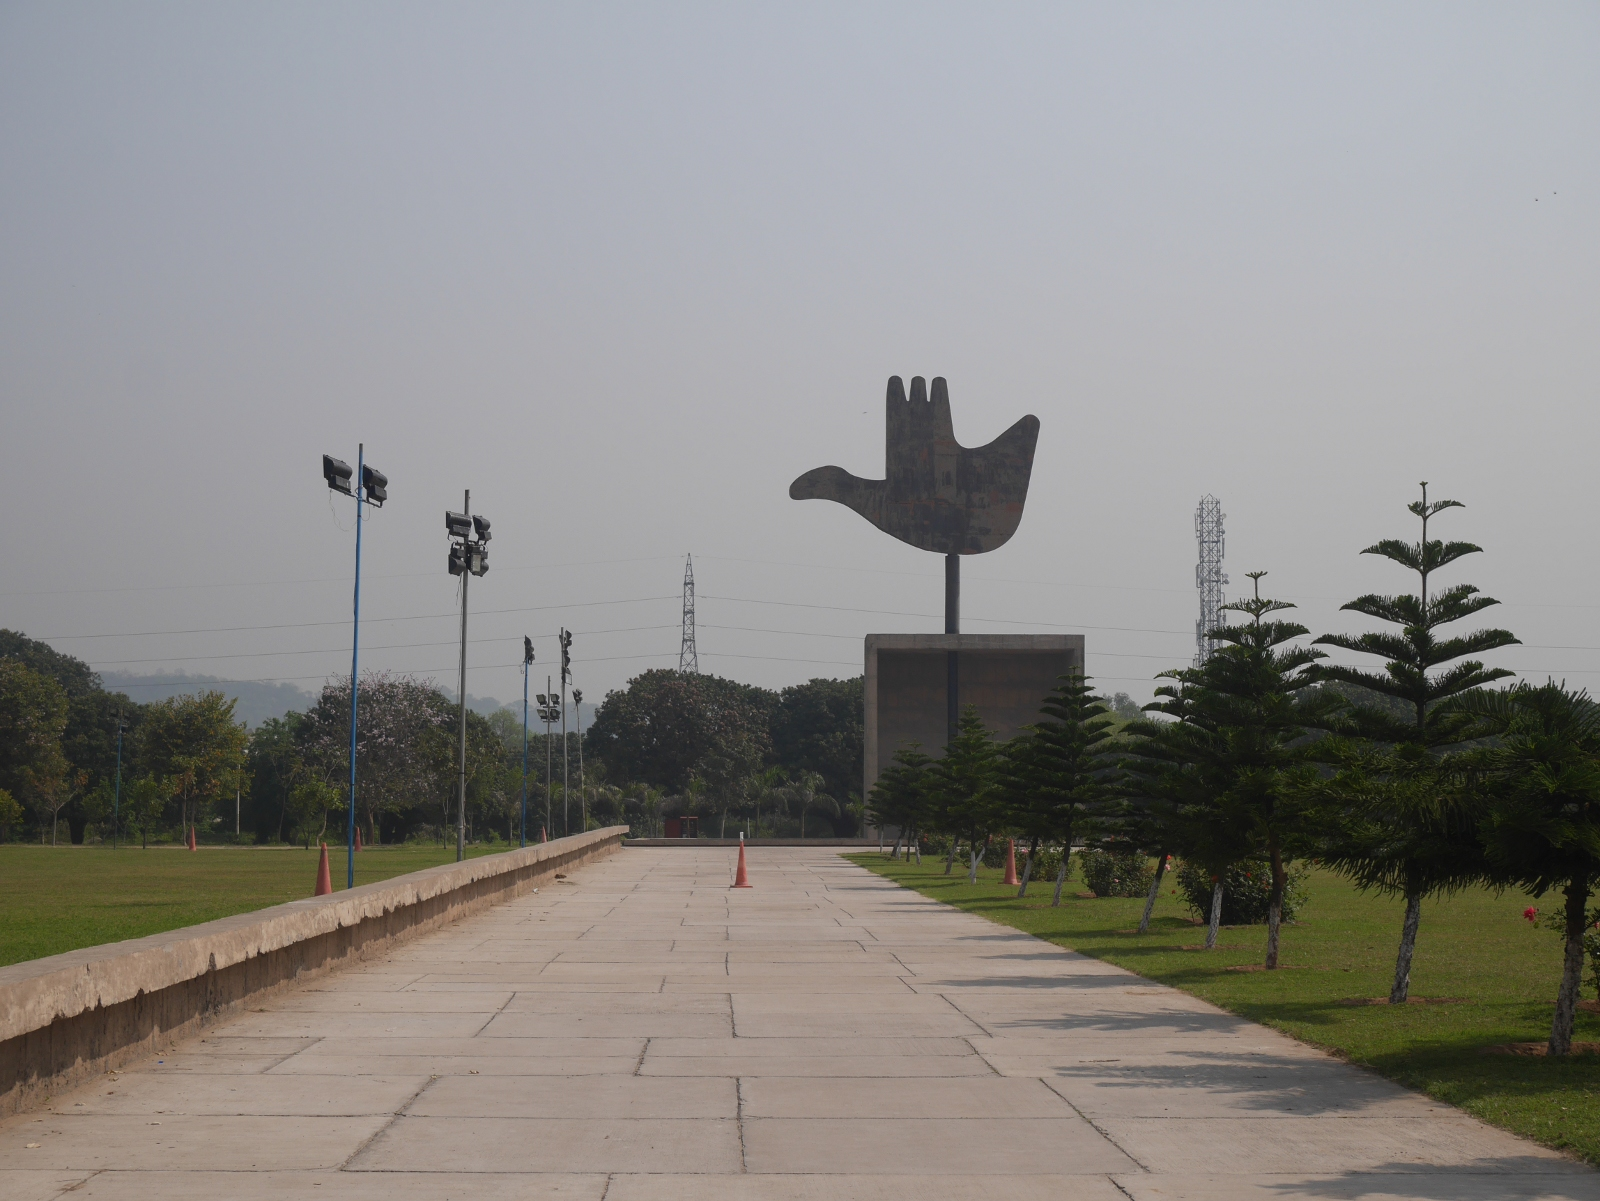 Chandigarh's Open Hand Monument, designed by Le Corbusier but not constructed until 1985.